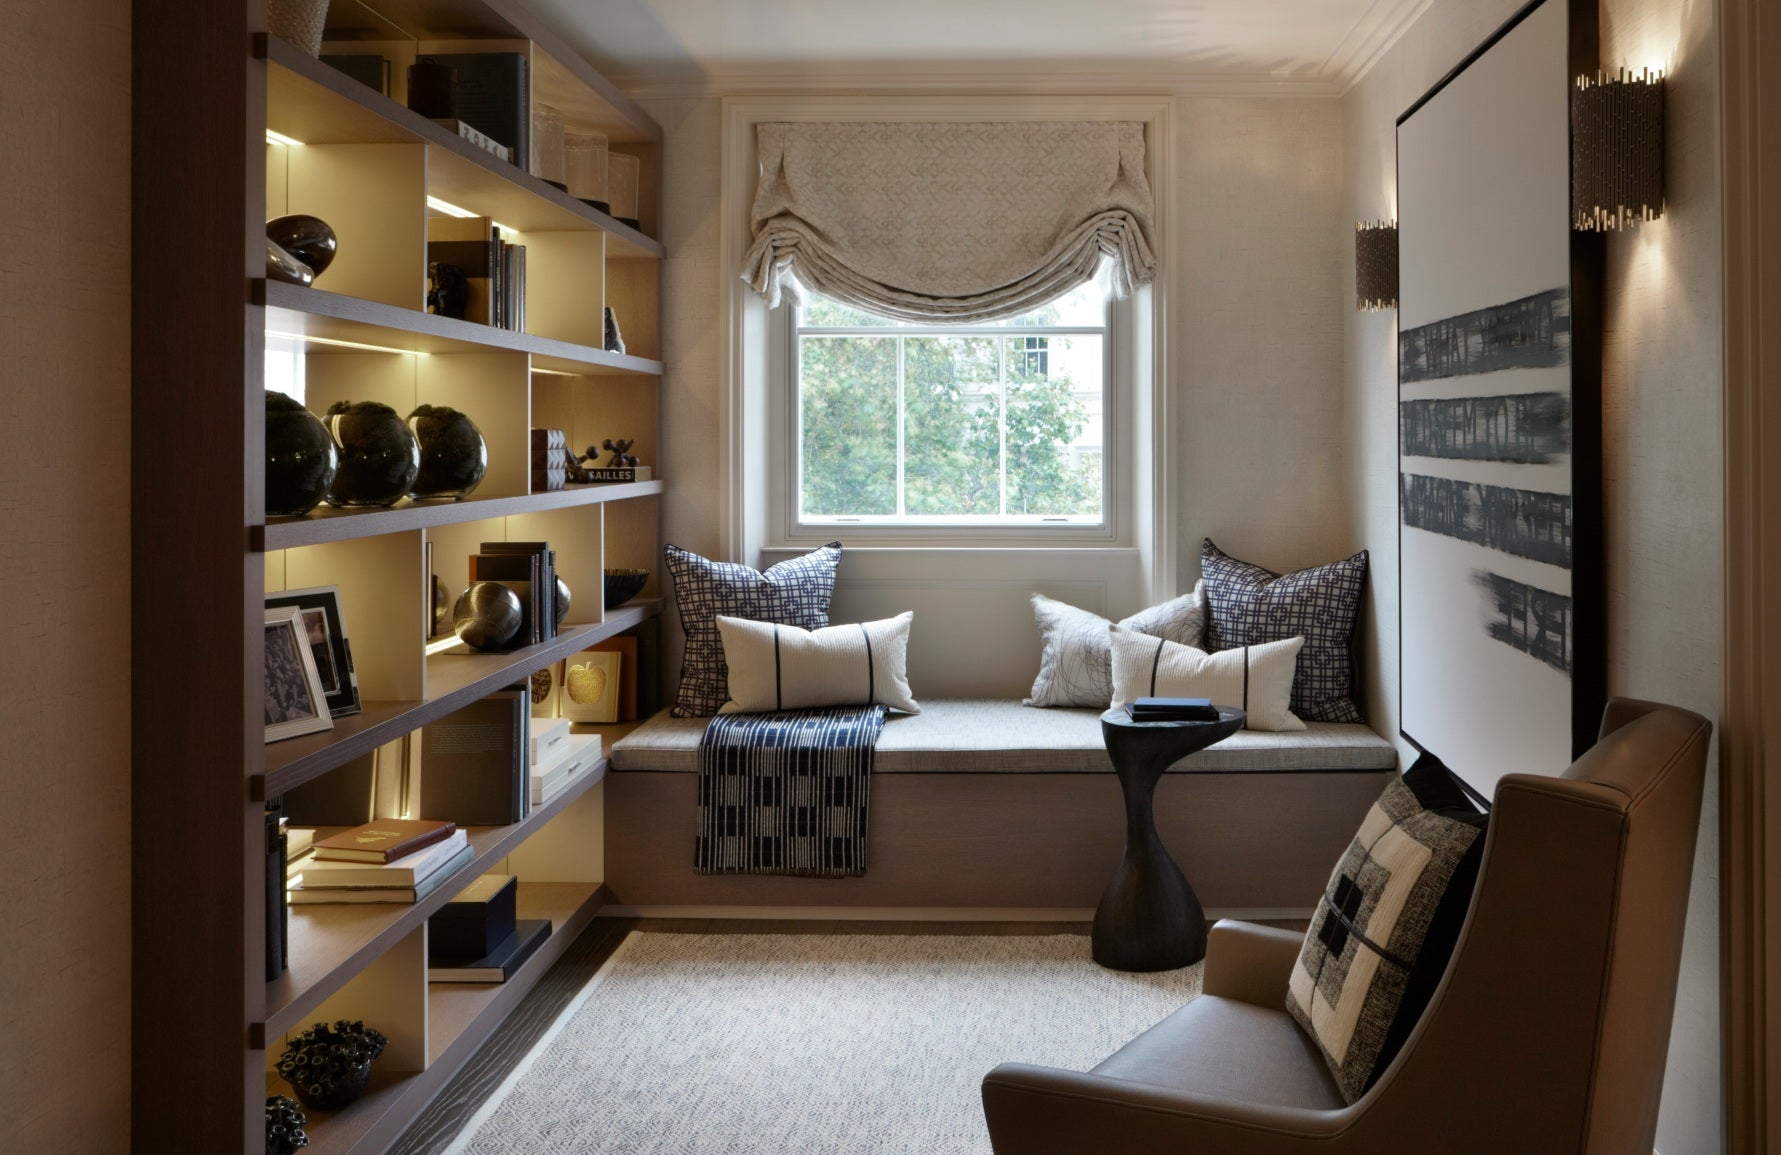 How To Make A Small Room Look Bigger | Helen Green Design | Small Room Ideas | Shop luxury furniture online at LuxDeco.com